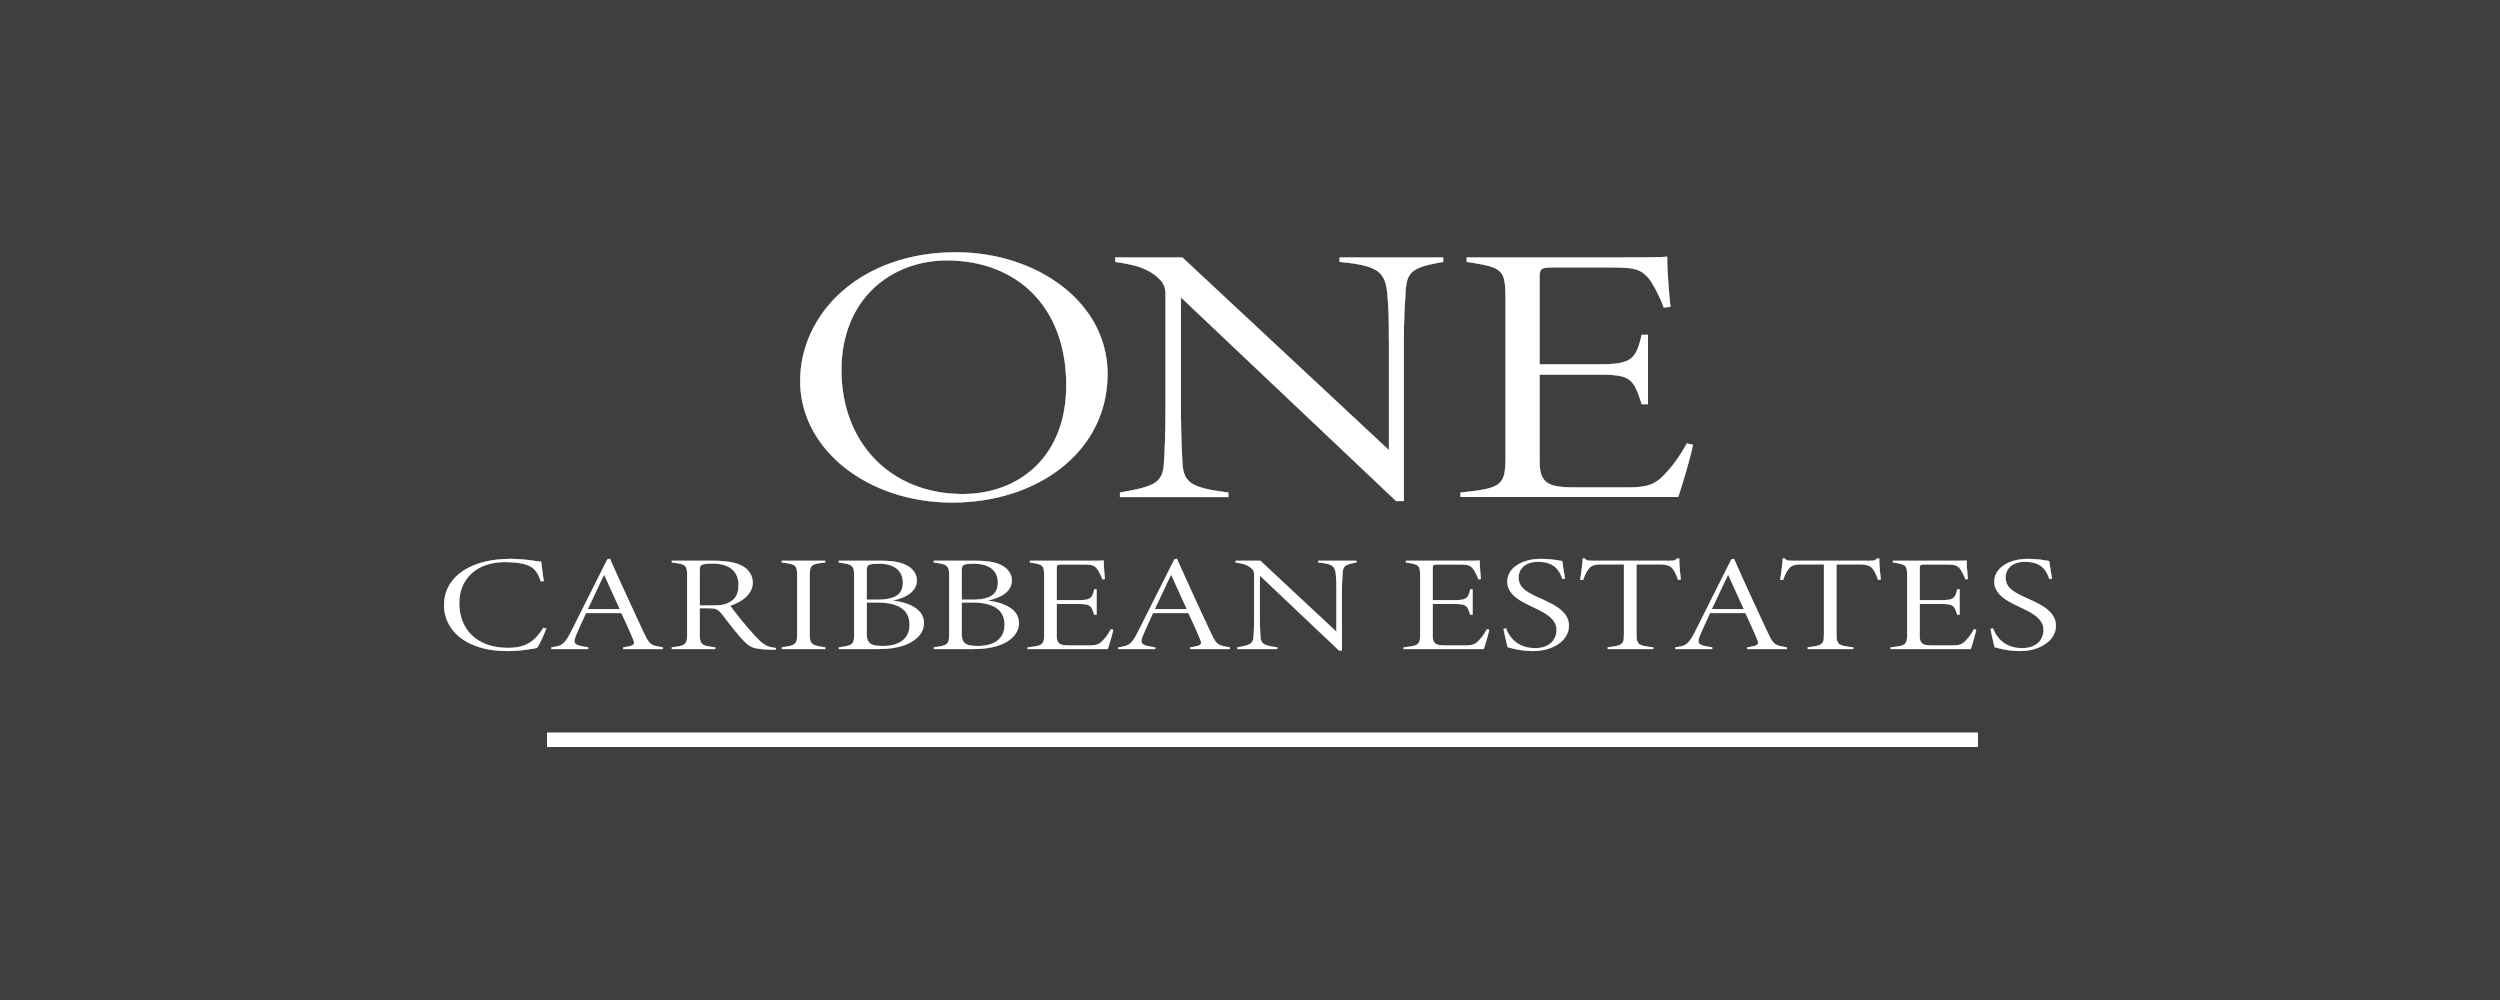 One Caribbean Estates